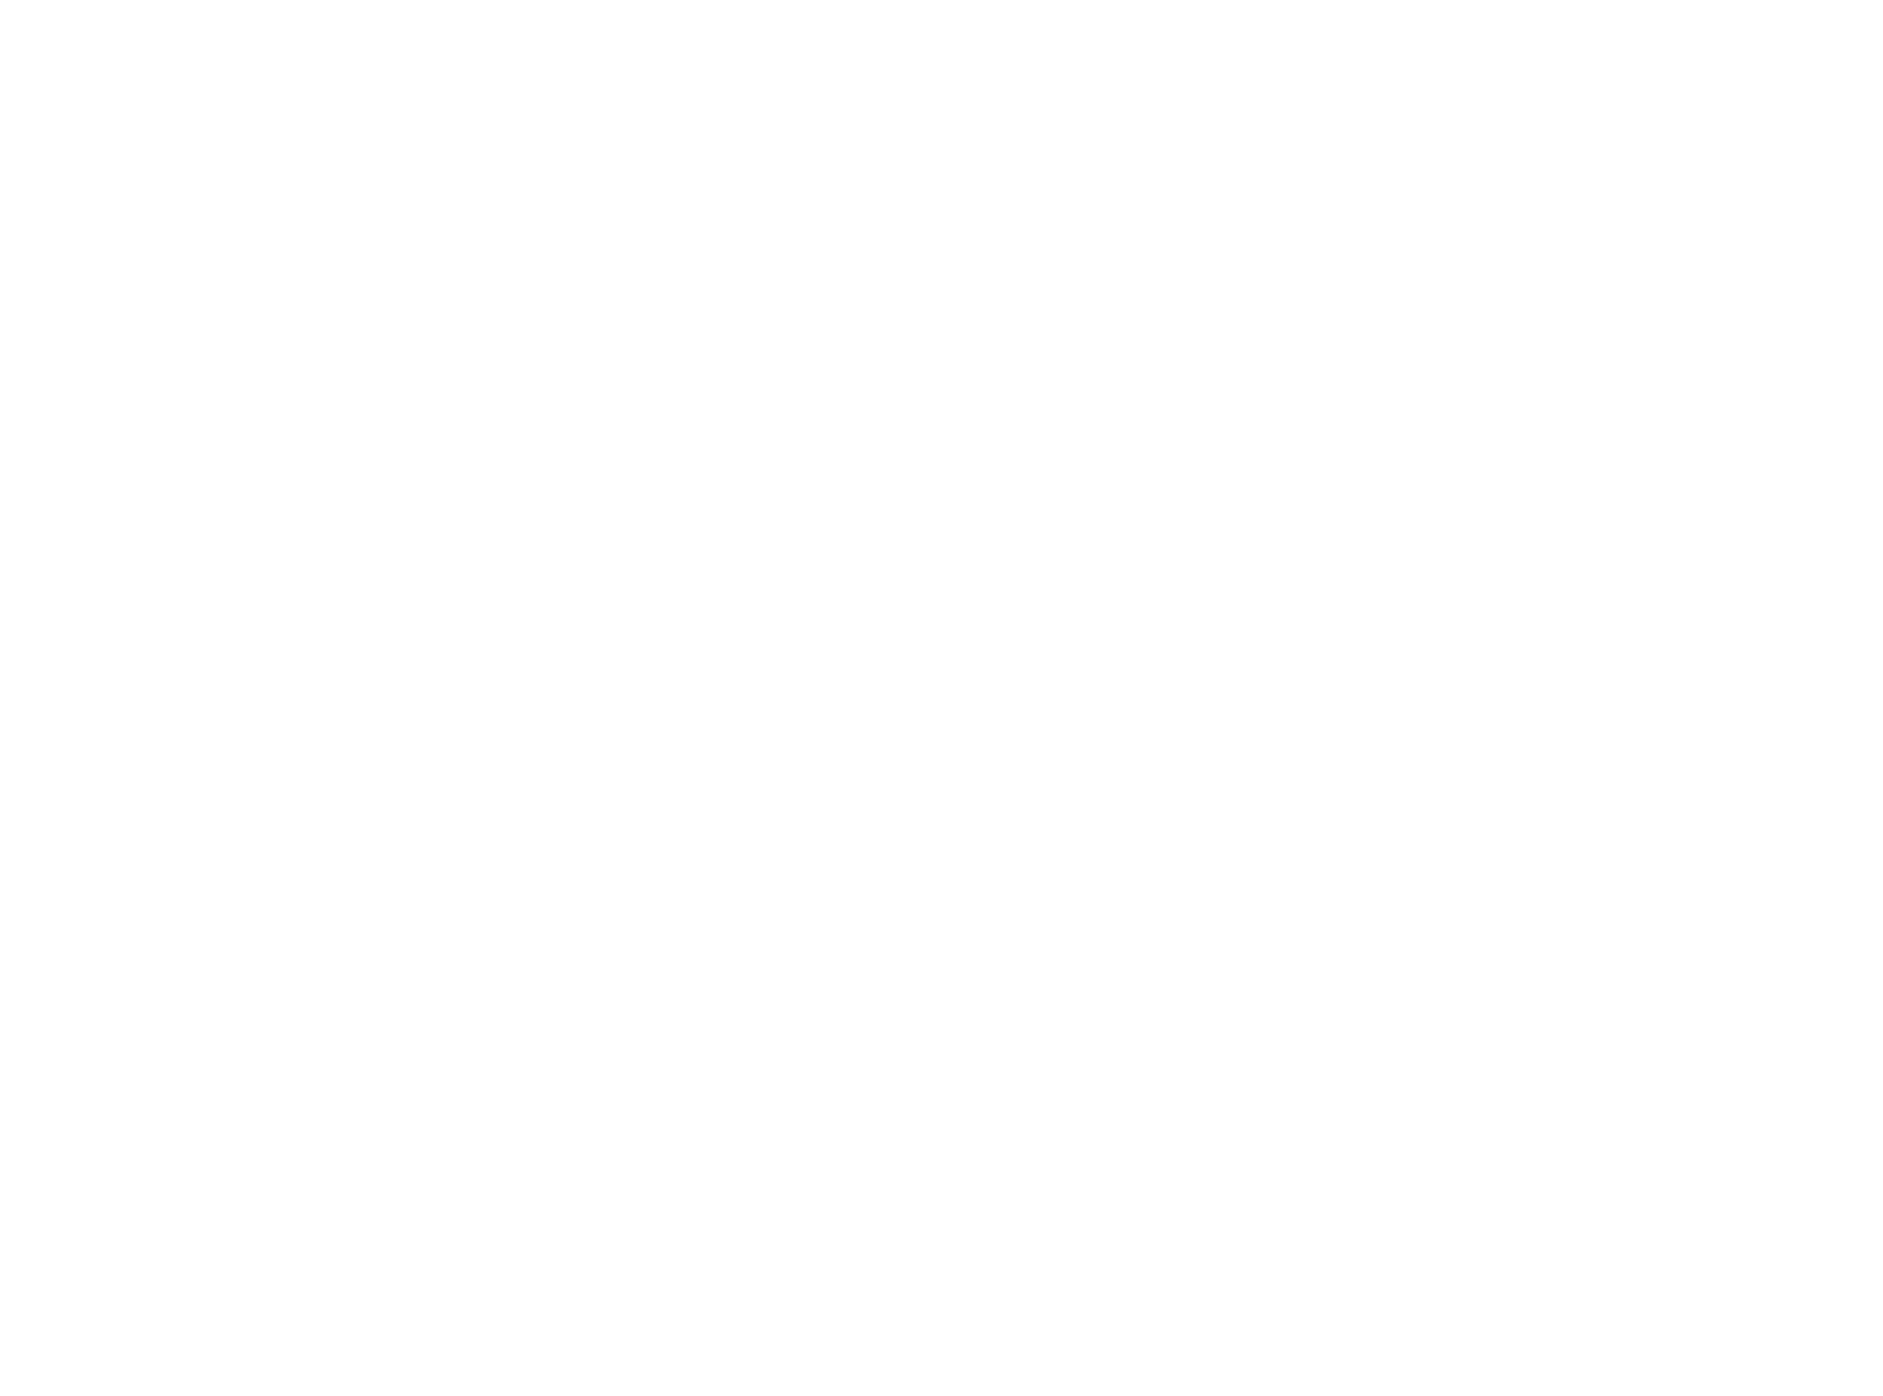 Tricon Solutions